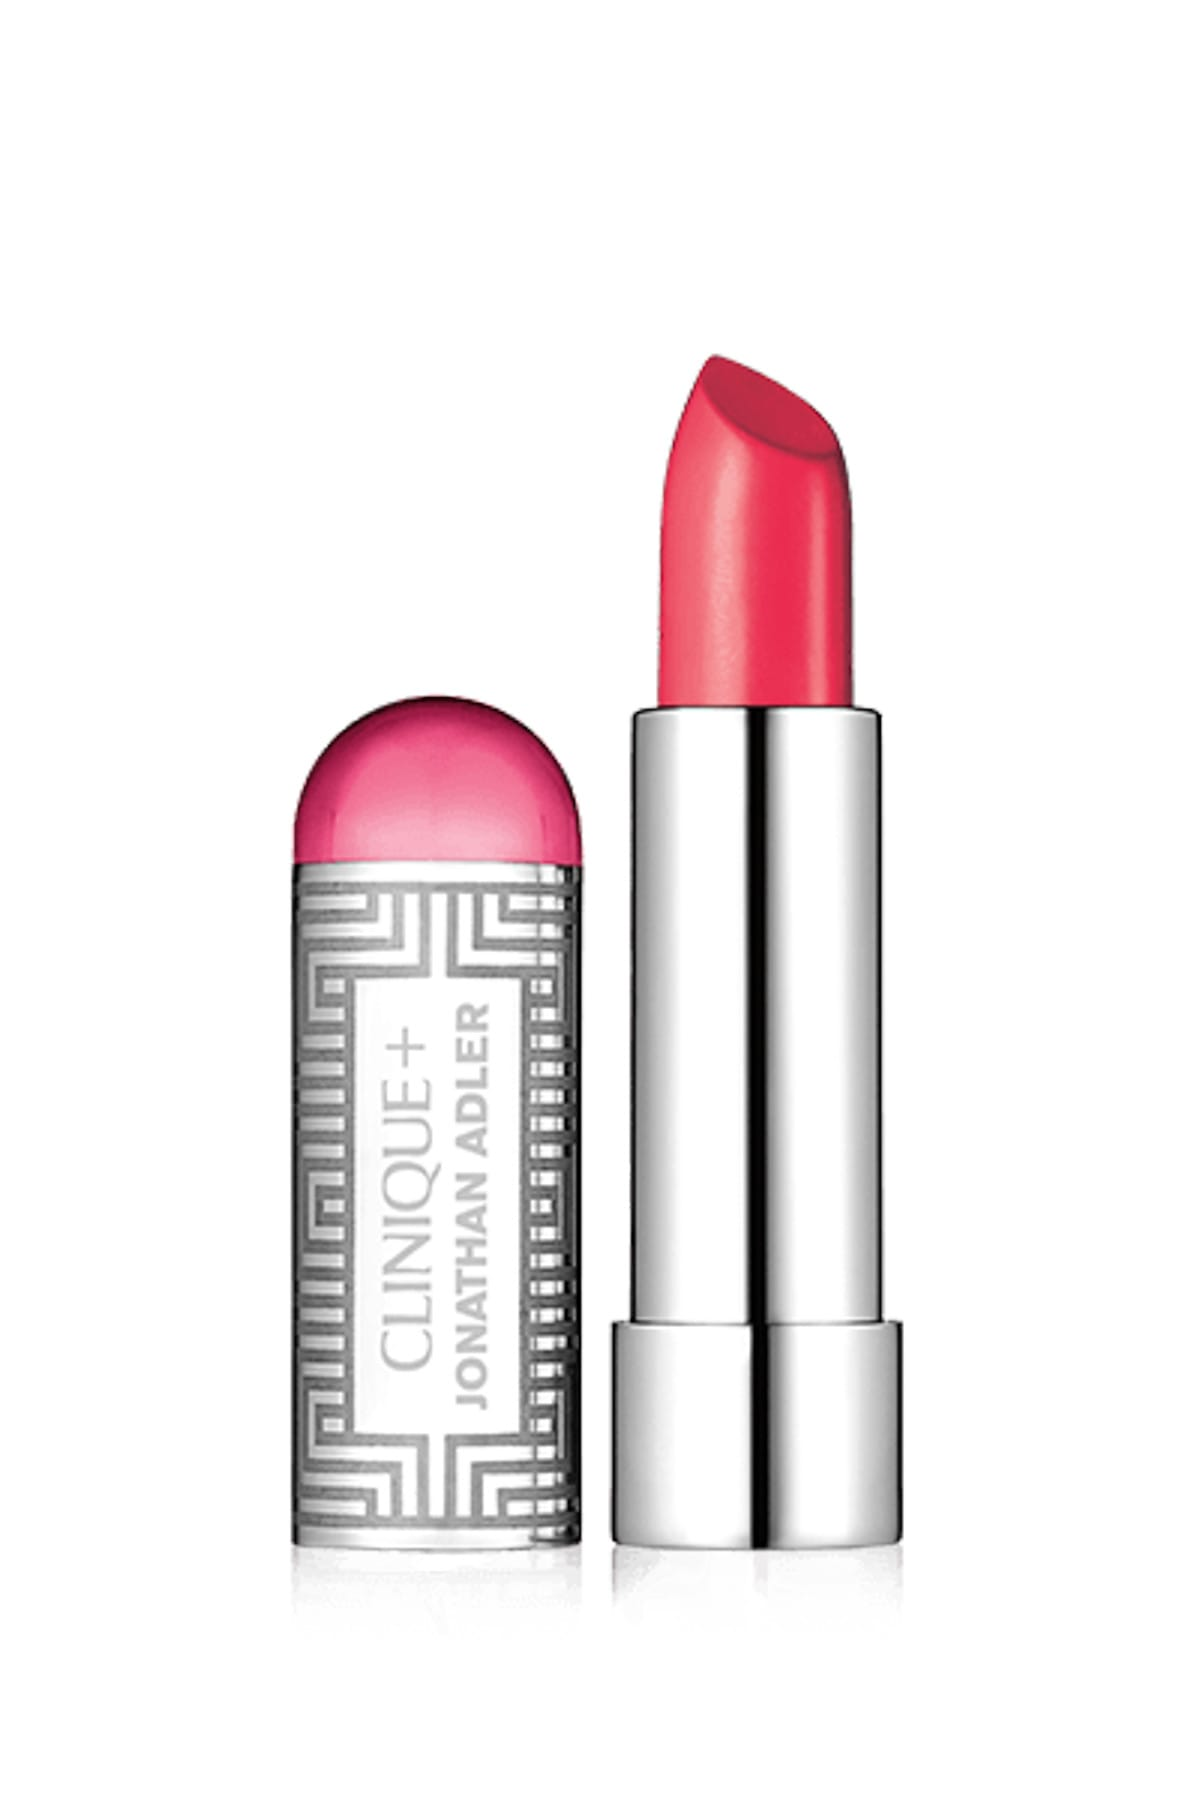 Clinique Ruj - Pop Lip Colour & Primer Palm Beach Pop 3.9g 020714875343 1